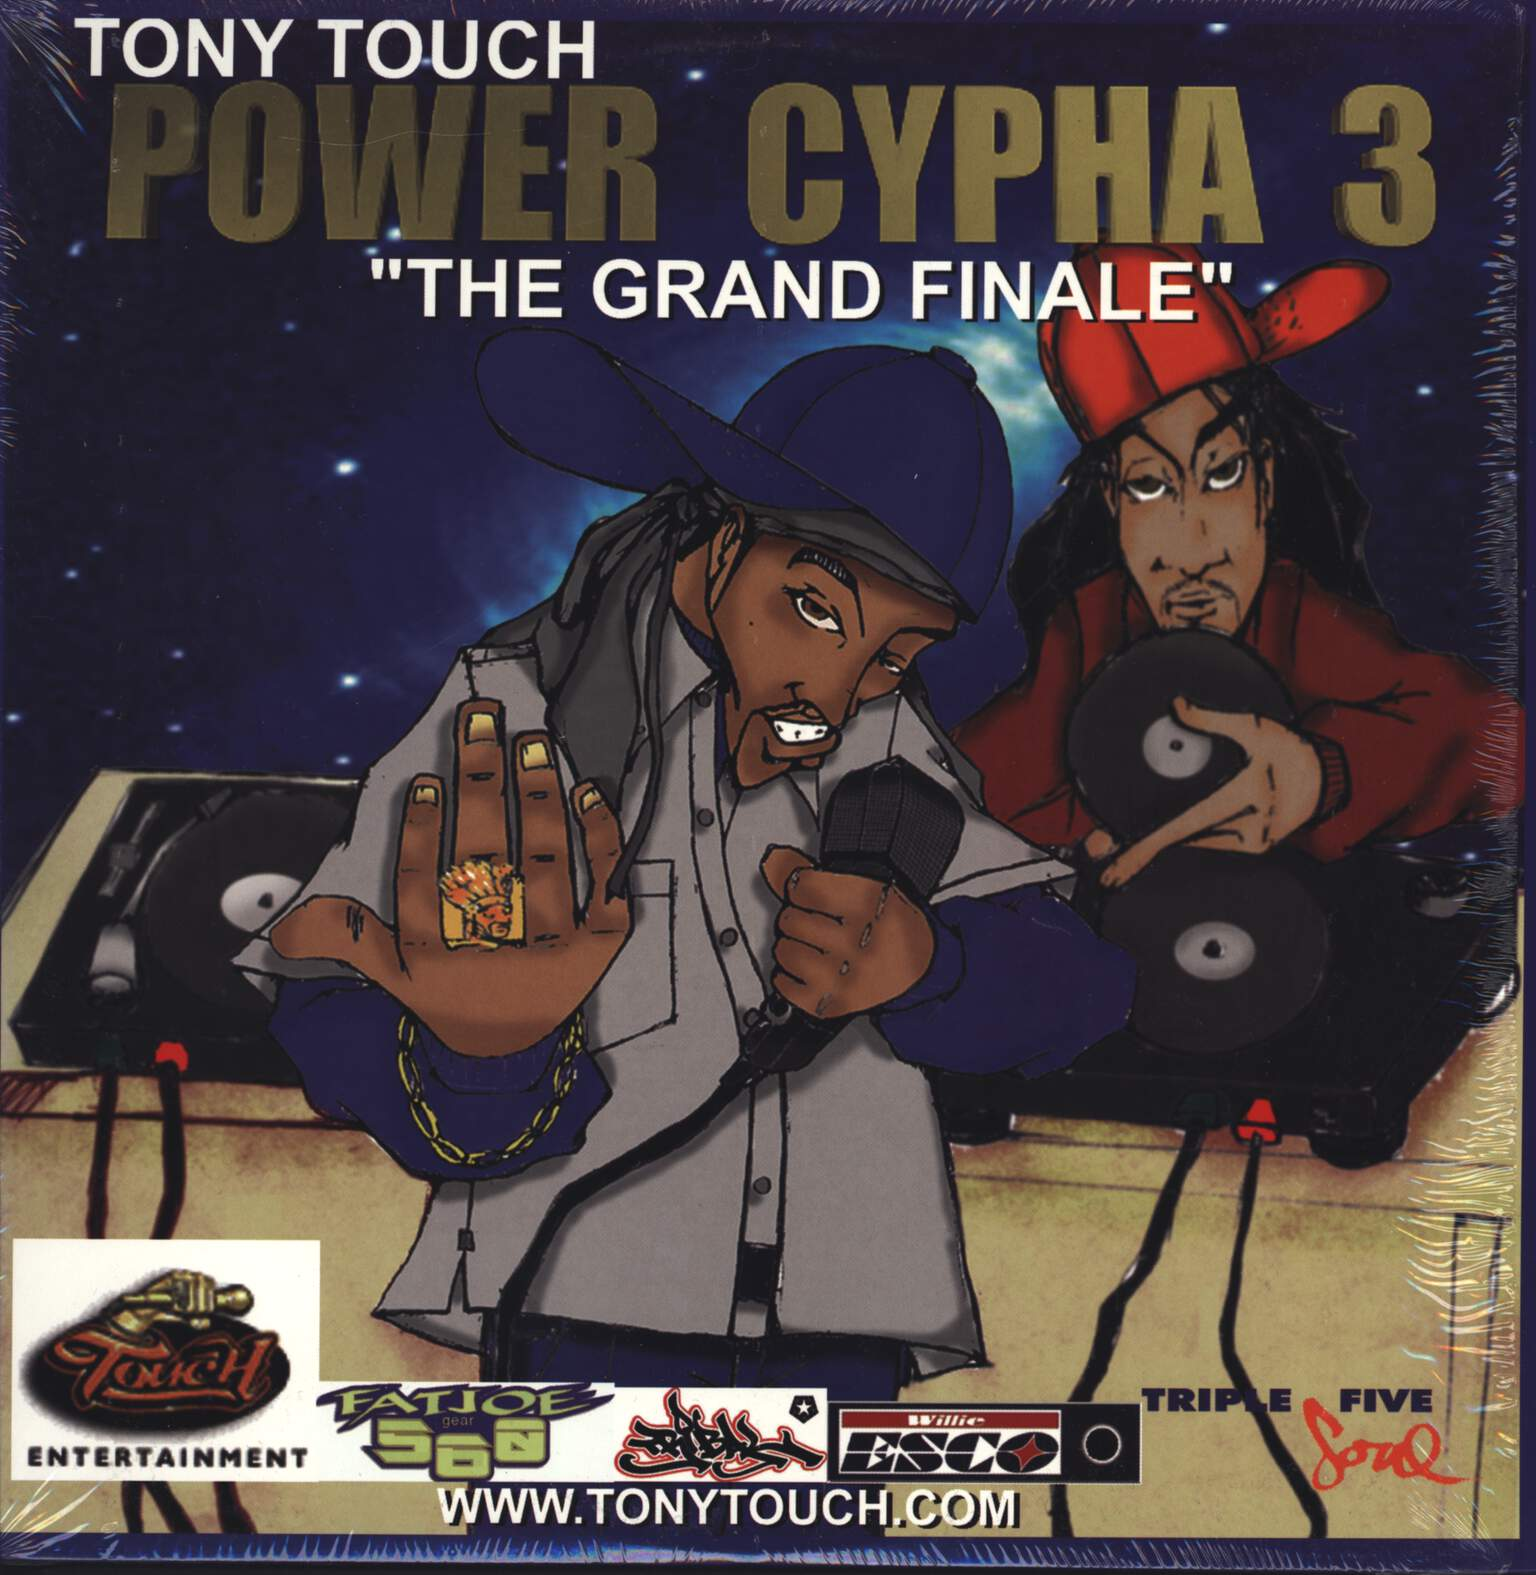 "Tony Touch: Power Cypha 3 ""The Grand Finale"", 12"" Maxi Single (Vinyl)"